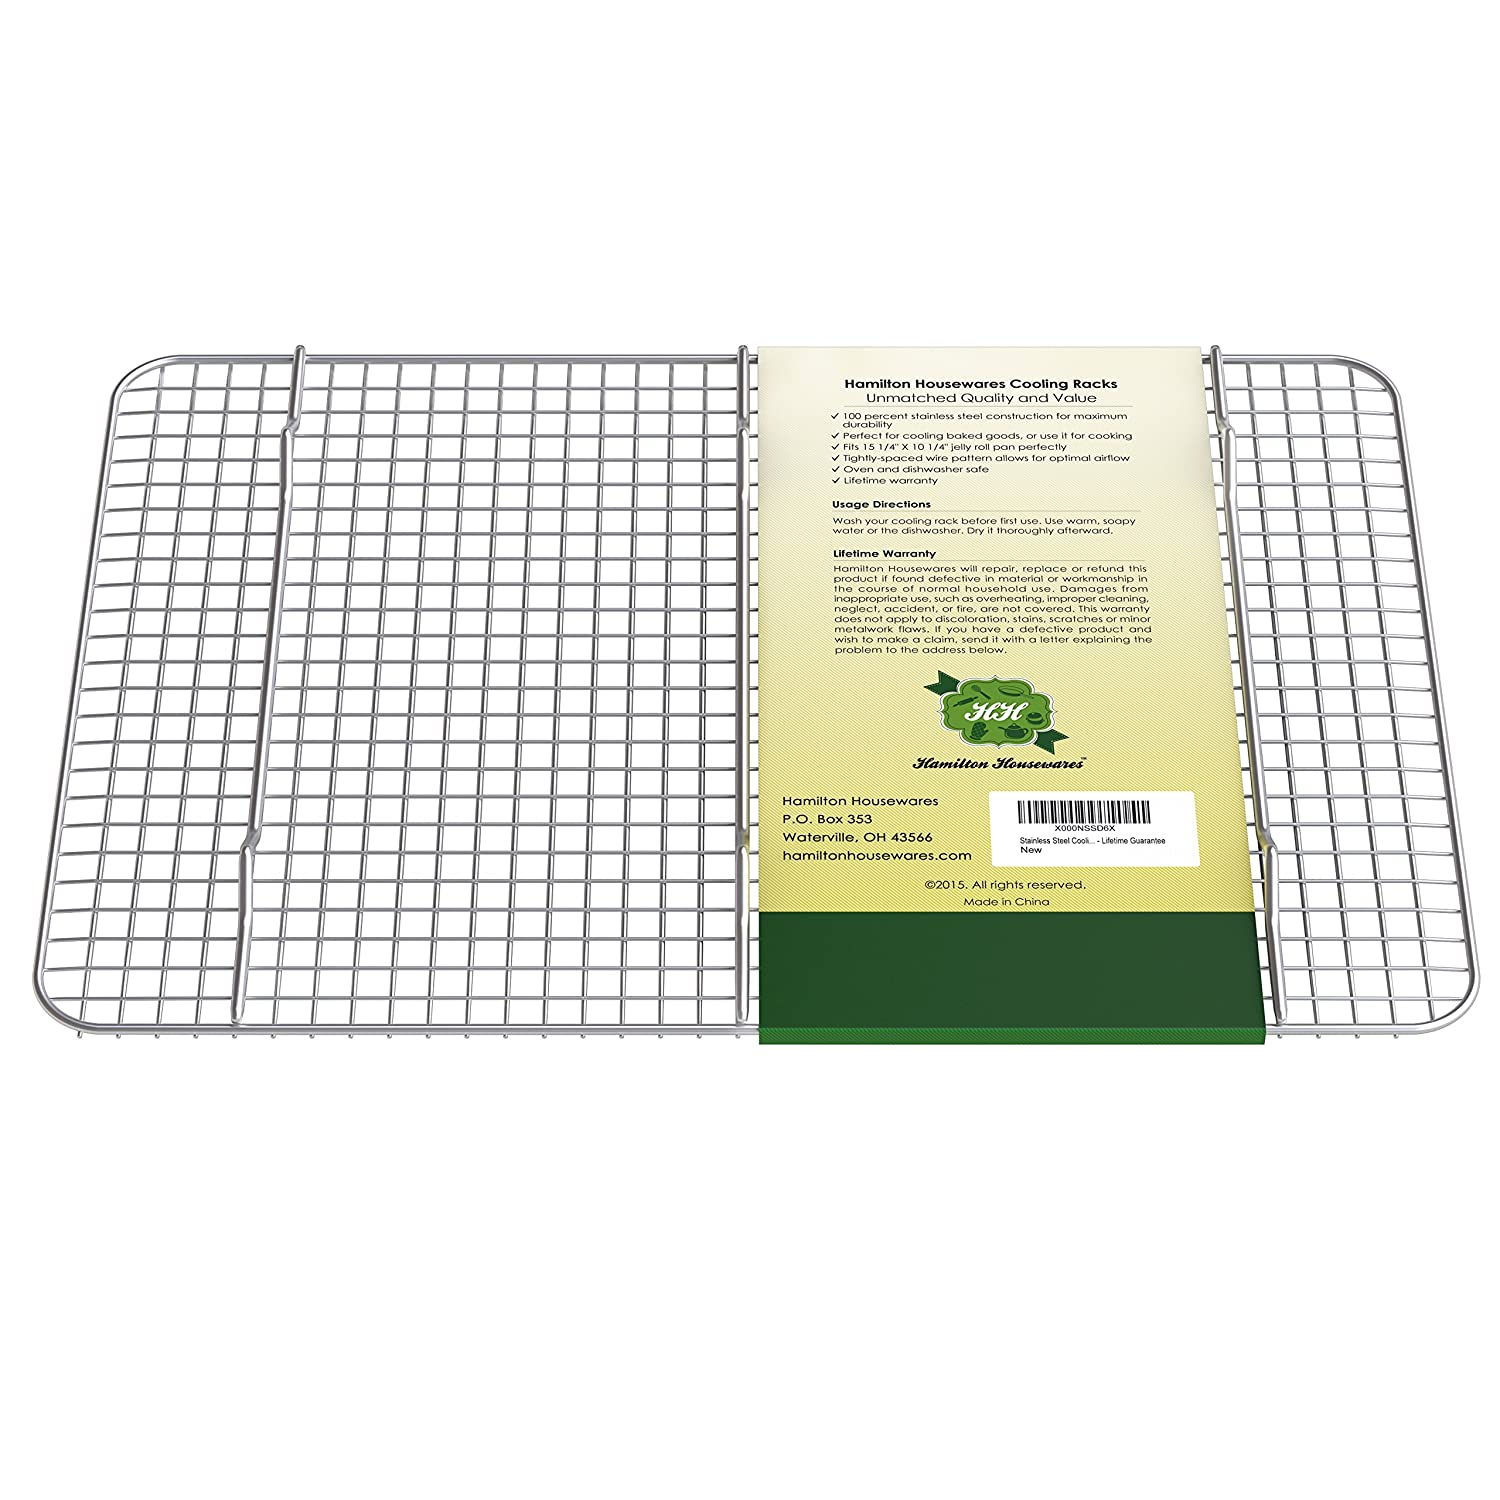 Hamilton Housewares Stainless Steel Cooling Rack - 10 Inches X 15 Inches  Heavy Duty, Commercial, Metal Wire Grid Rack